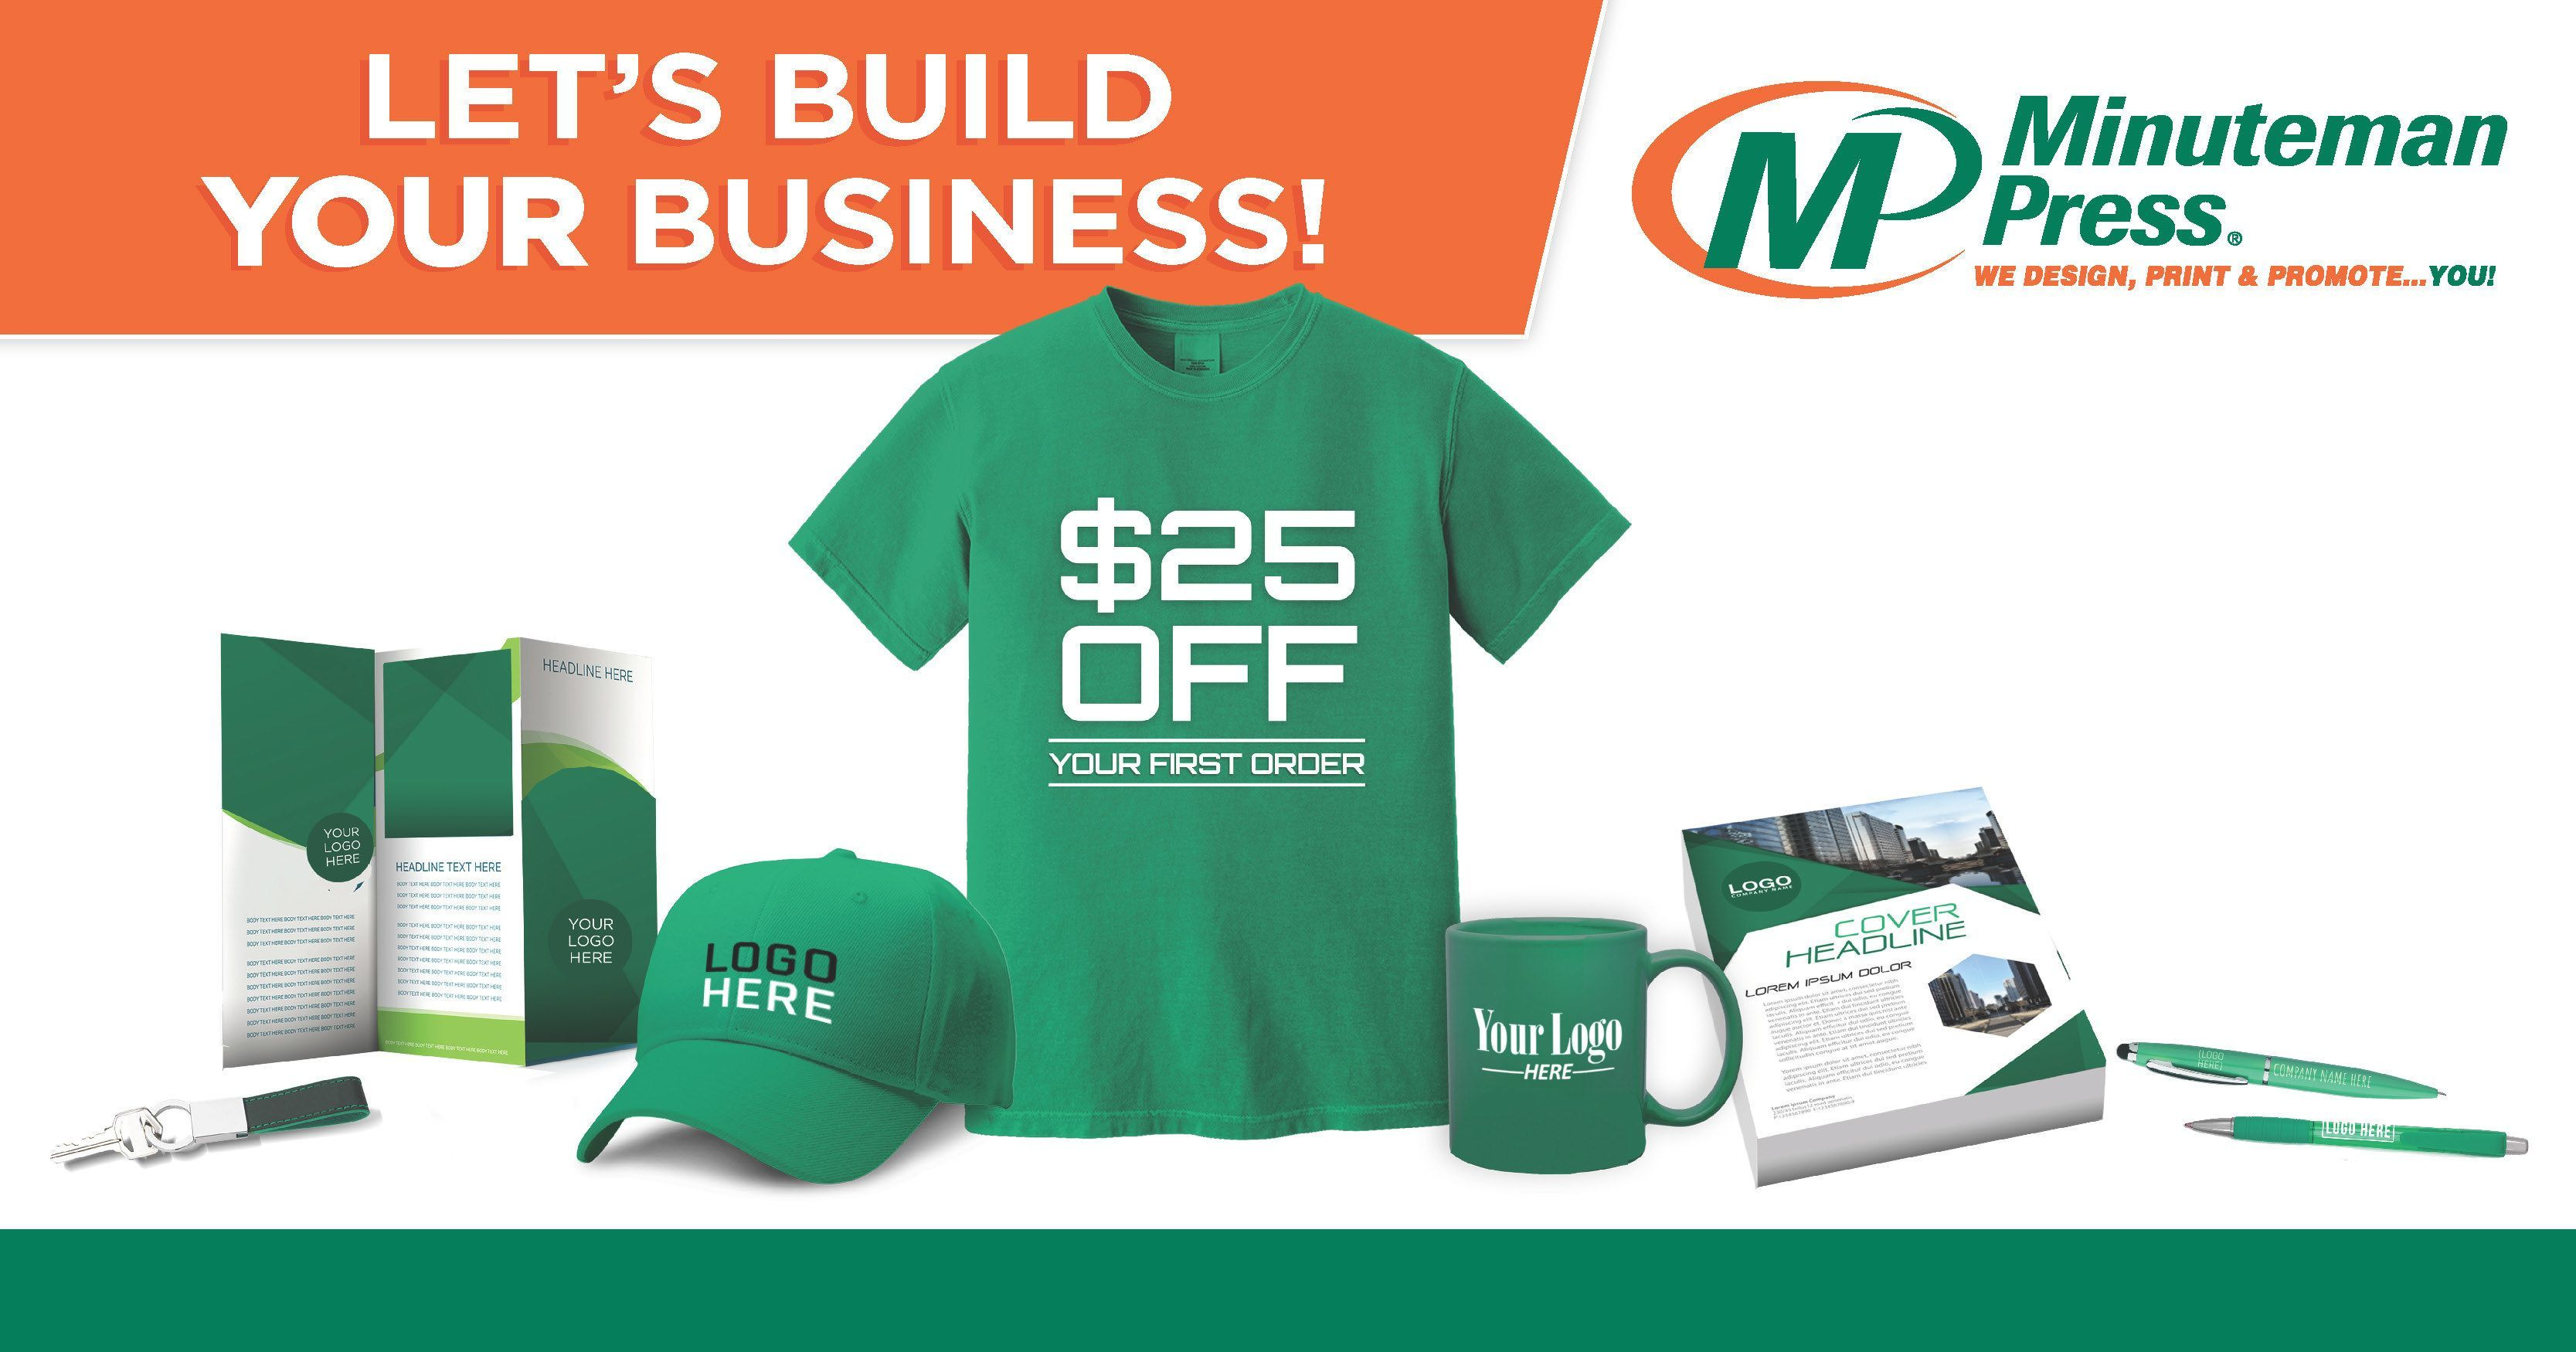 Receive $25 off* your first Minuteman Press Champaign order! We can help you build your business and save. *$25 off your first order of $100 or more.